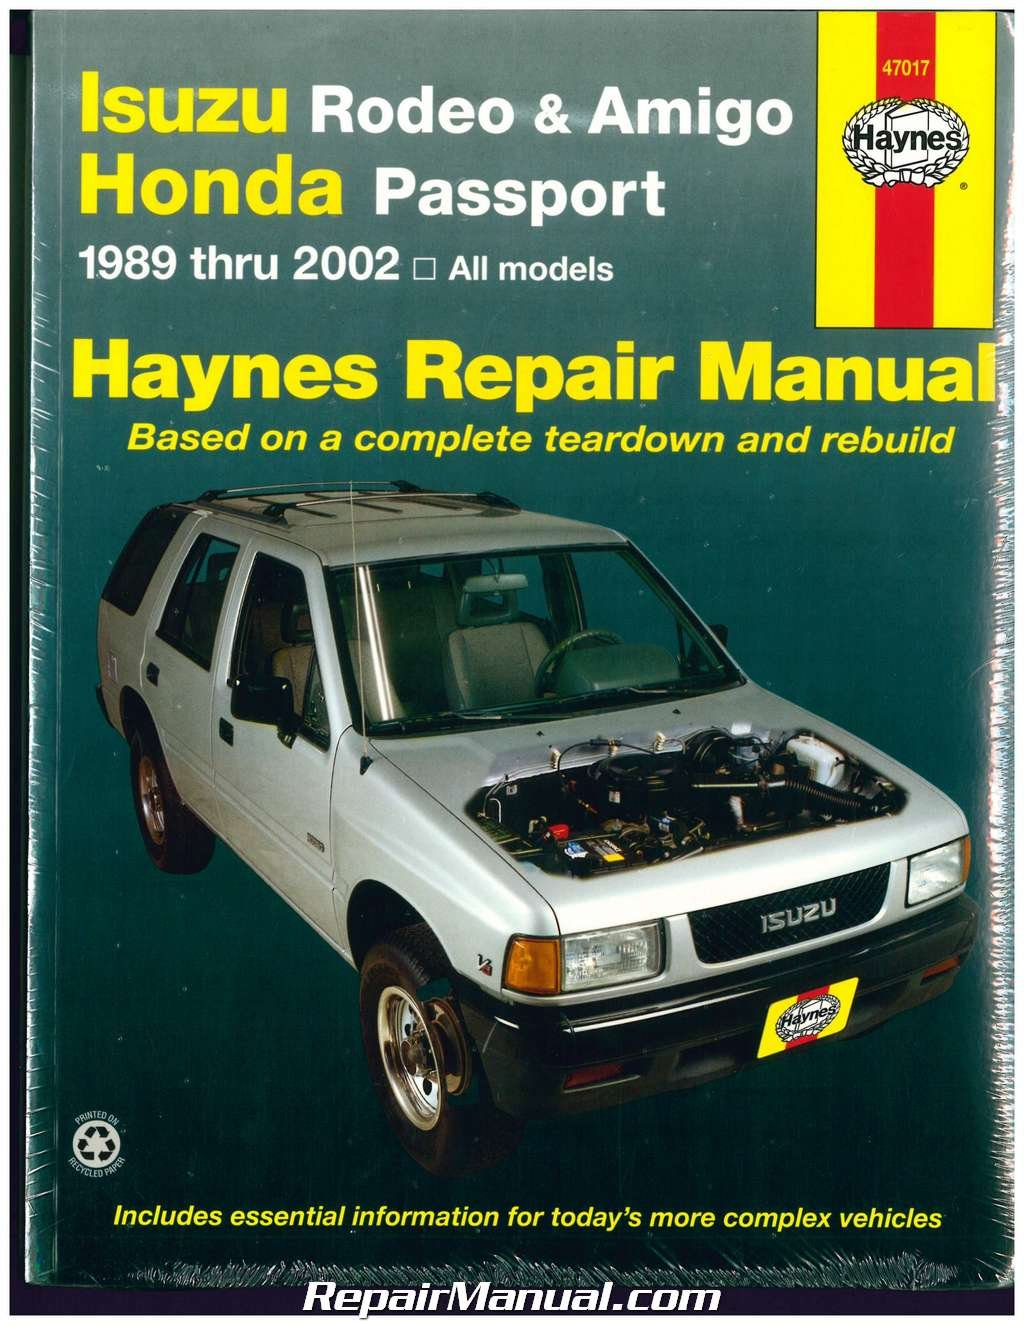 h47017 haynes isuzu rodeo amigo honda passport 1989 2002 auto repair rh  amazon com Honda Accord Service Manual PDF Honda Accord Service Manual PDF